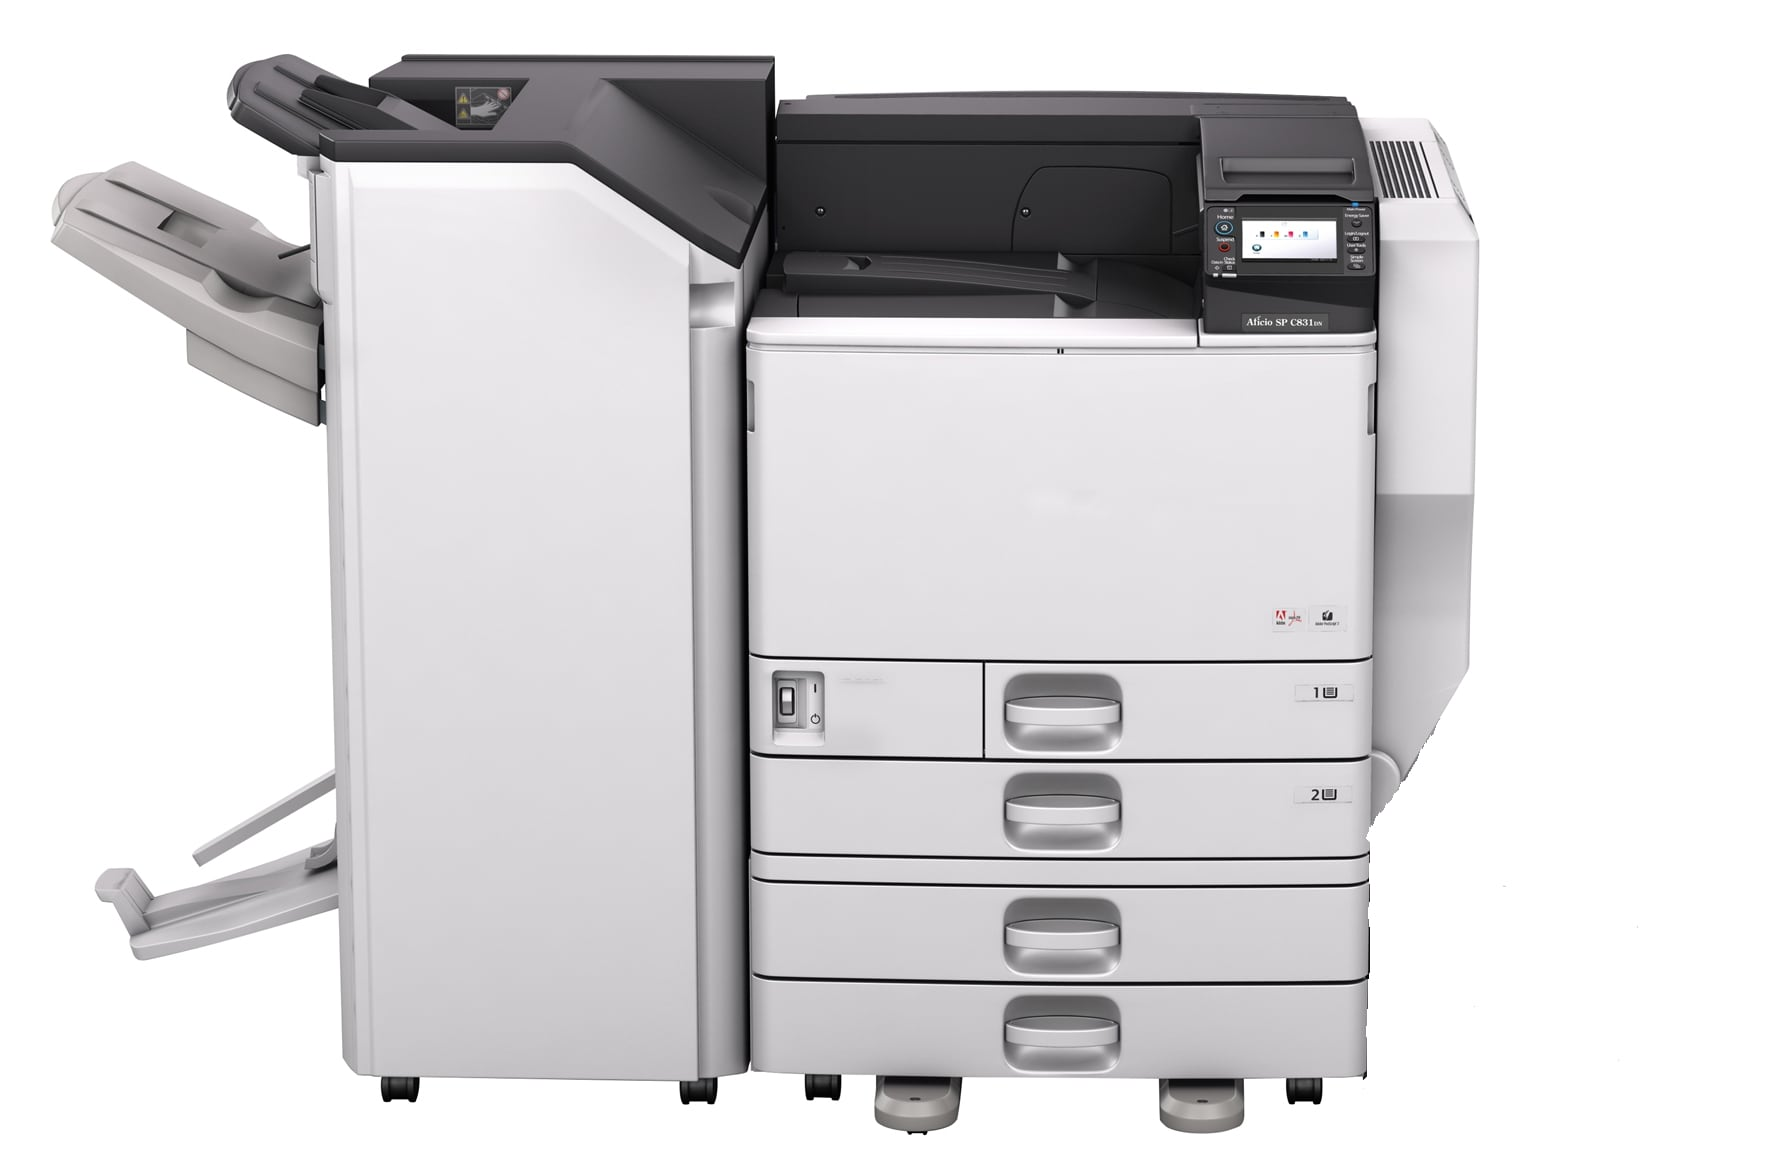 Ricoh SPC830DN A3 wide format colour laser printer